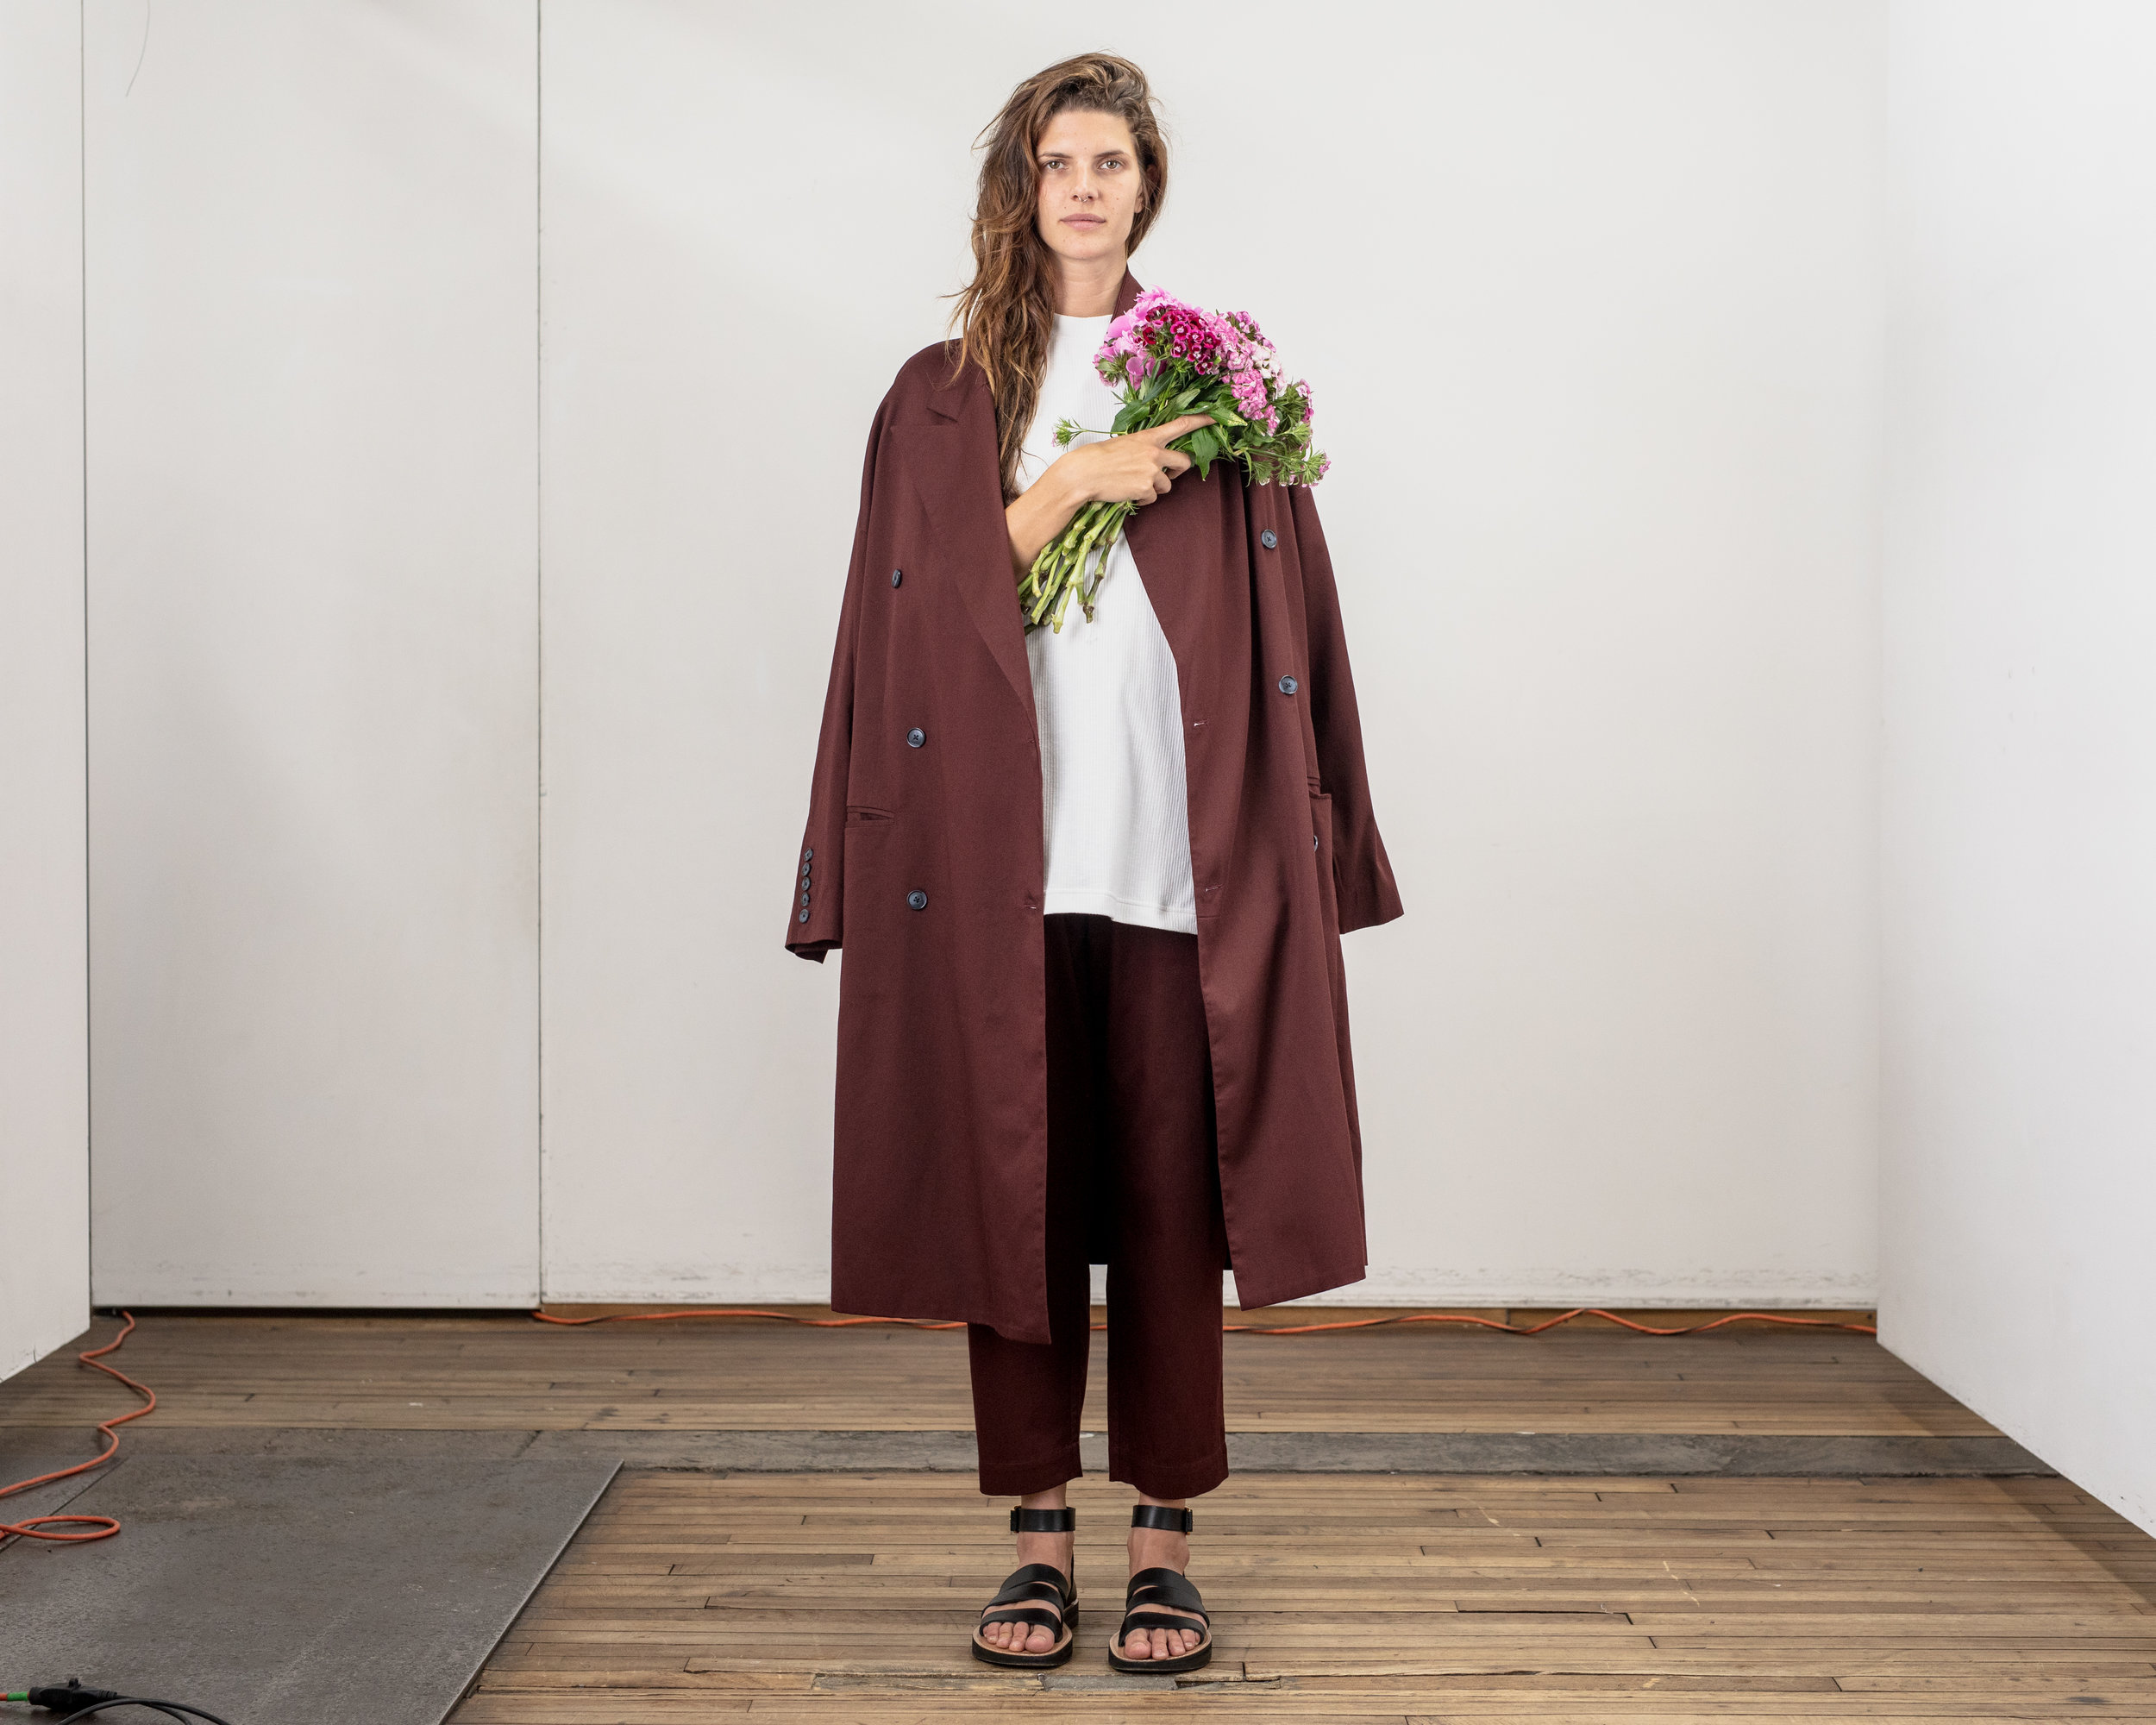 roucha-2019-lookbook-Final-5000px-68.jpg